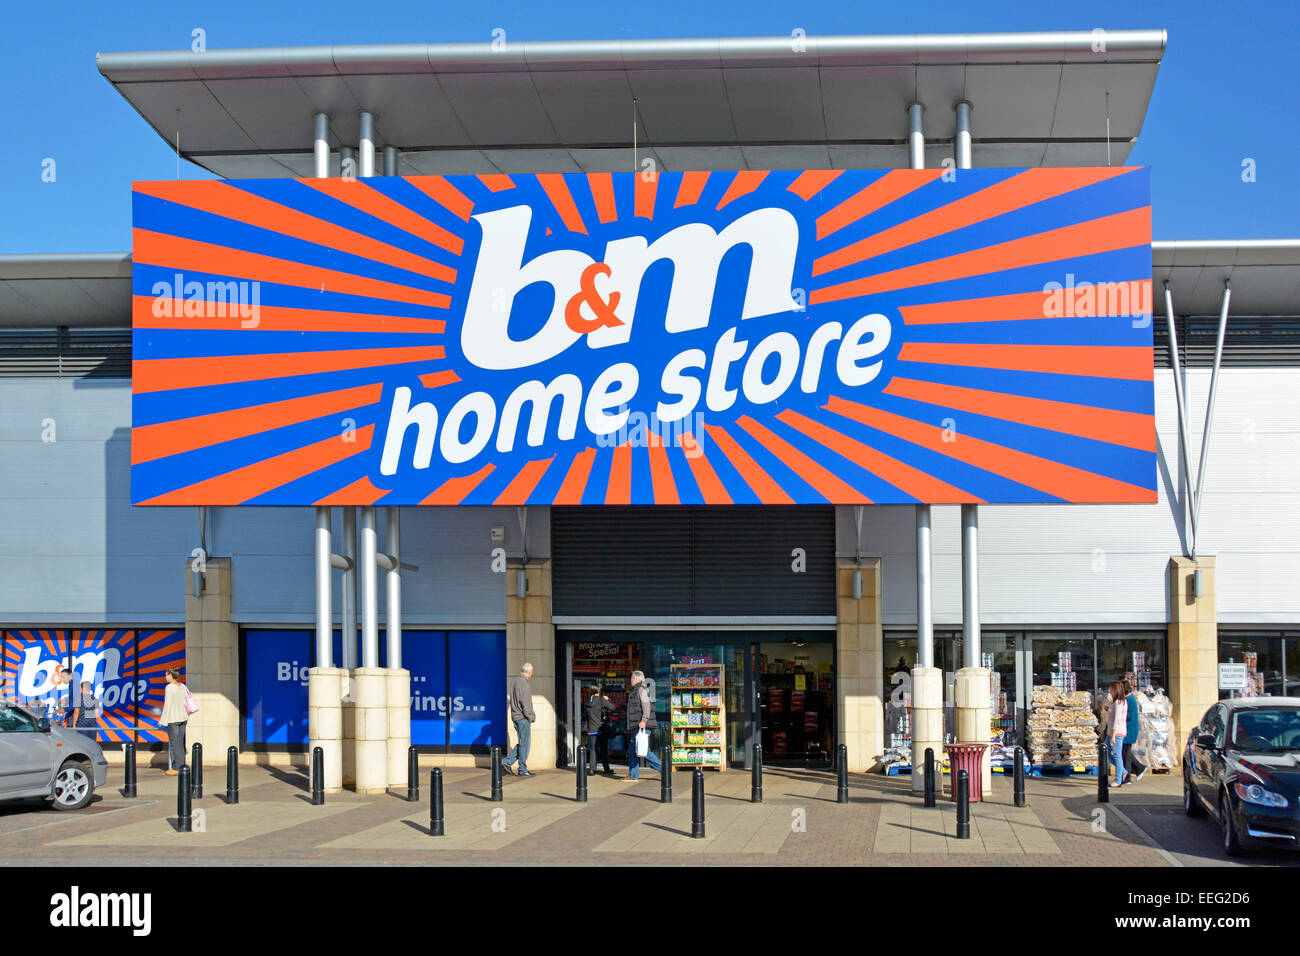 Staff across the remaining stores will be formally notified later on Monday that their jobs are going into redundancy consultation, with all stores to be closed by August